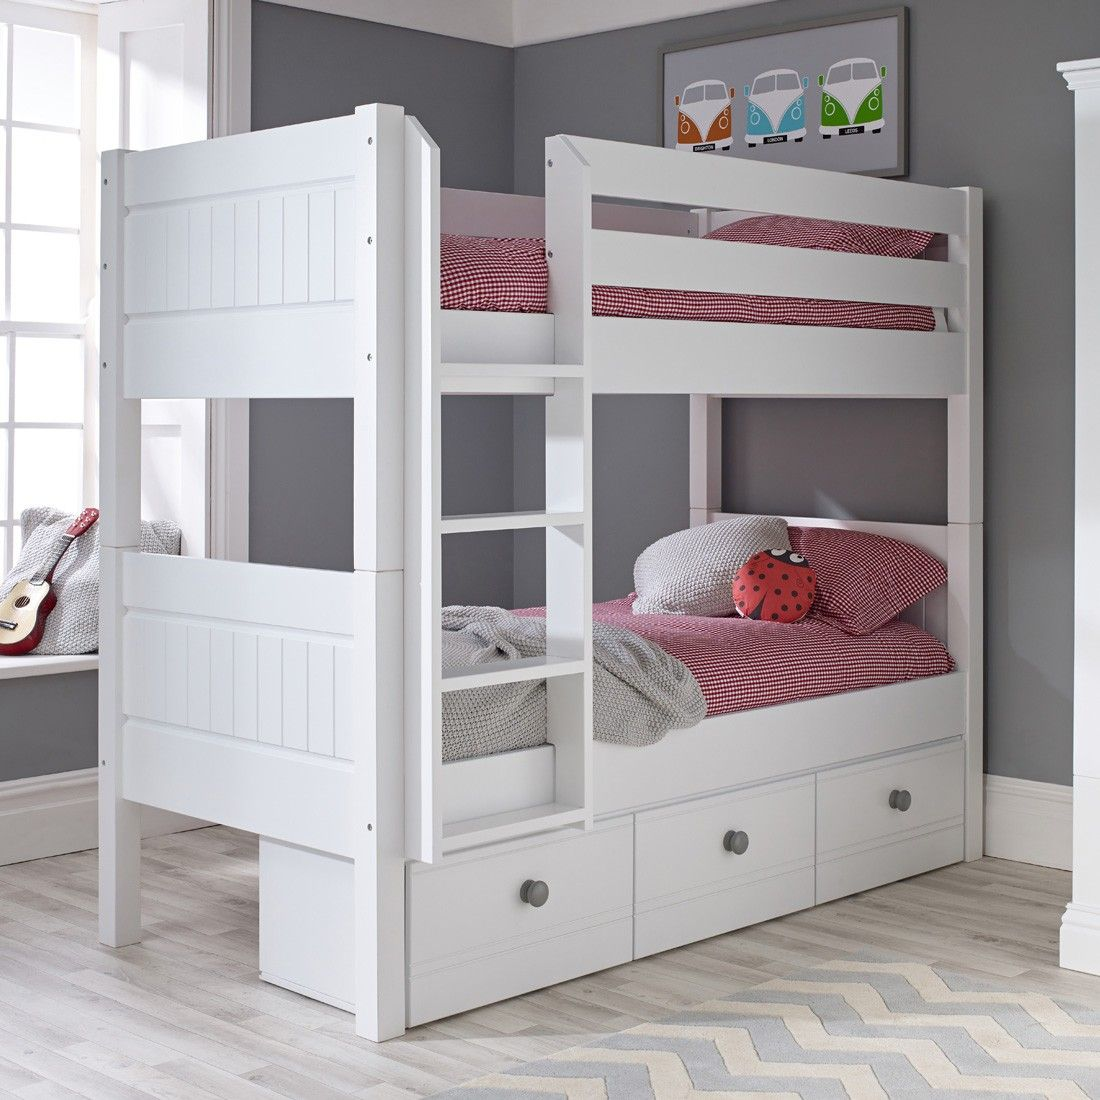 Pebblelicious Double Dreamer Bunk Bed Ollie Leila Childrens